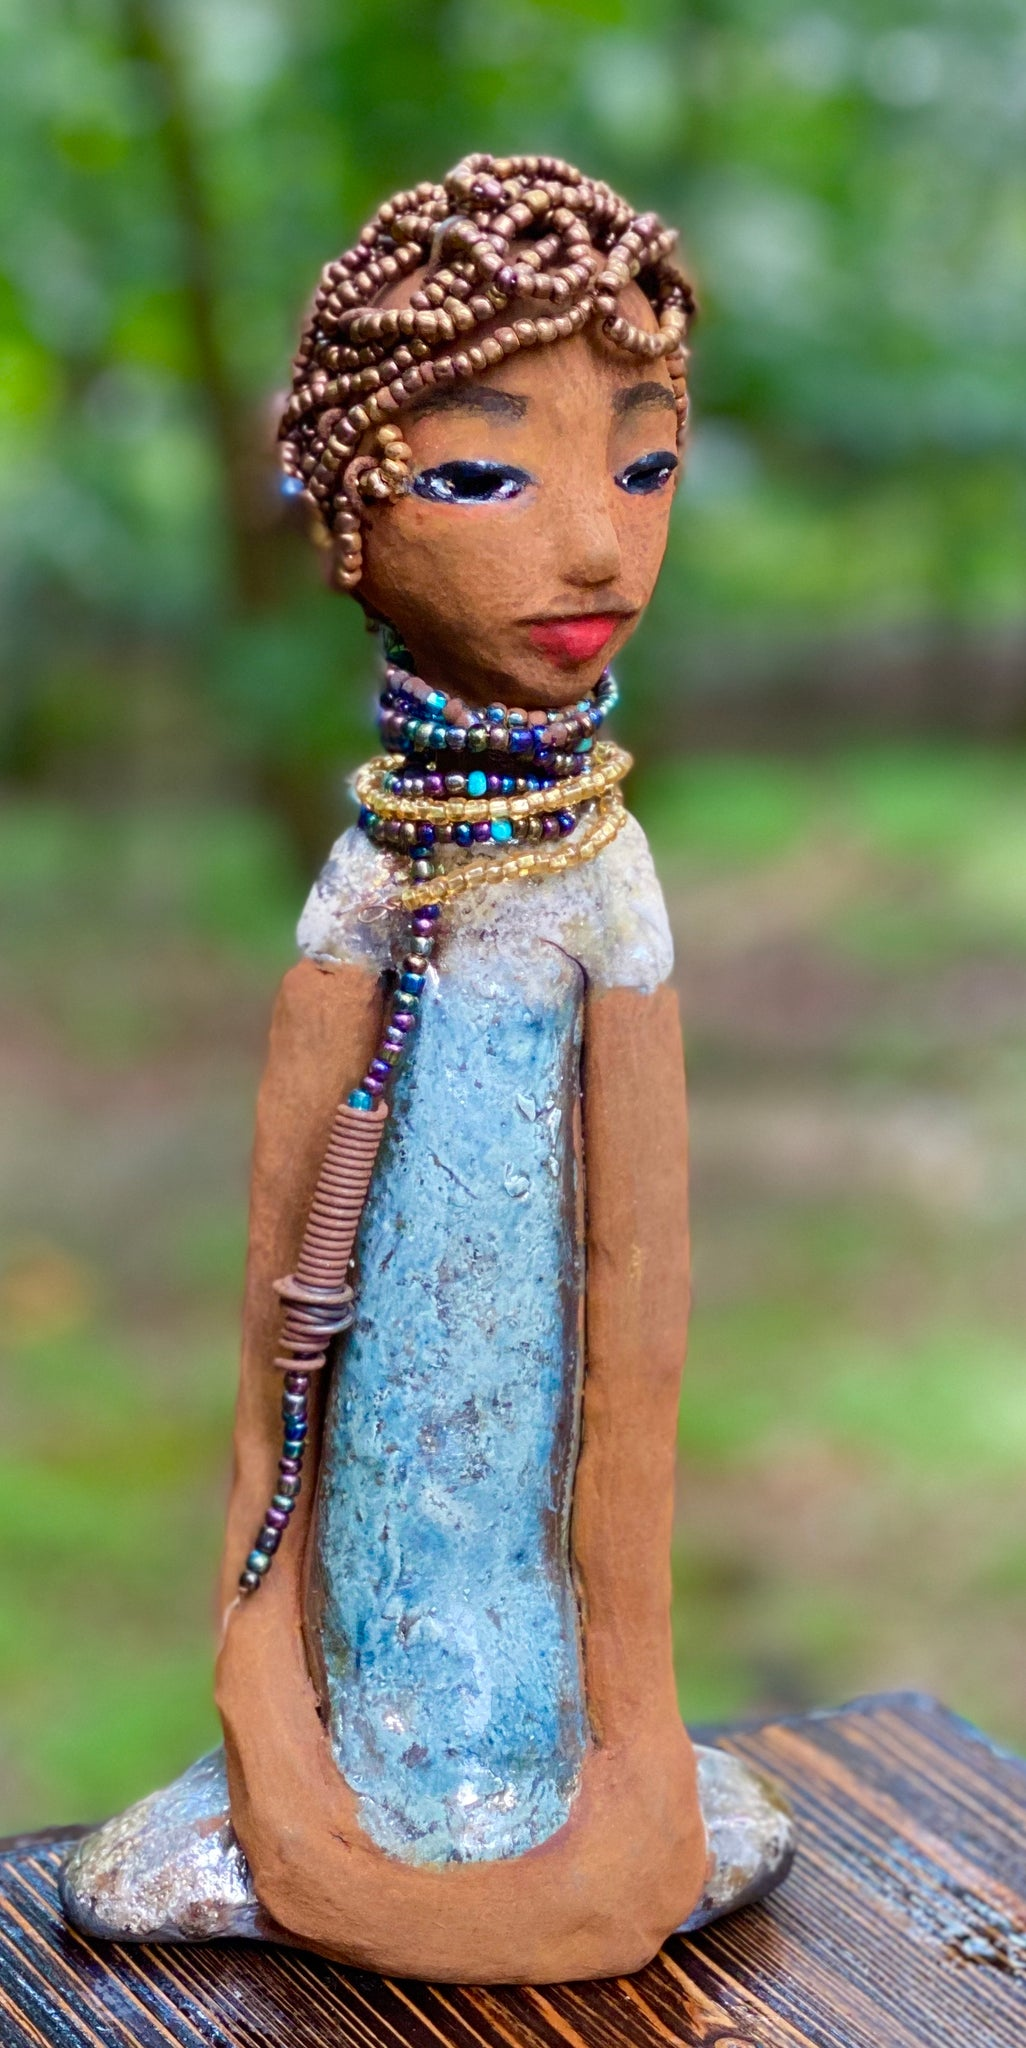 "Meet Morgan! Morgan stands 11.5"" x 5"" x 3"" and weighs 1.11 lbs. She has a lovely honey brown complexion with long loving arms. Morgan has amber gold beaded hair. Morgan dress is metallic gold and blue. She wears a matching gold beaded necklace. Morgan waits to become a part of your one of a kind art collection. Free Shipping!"